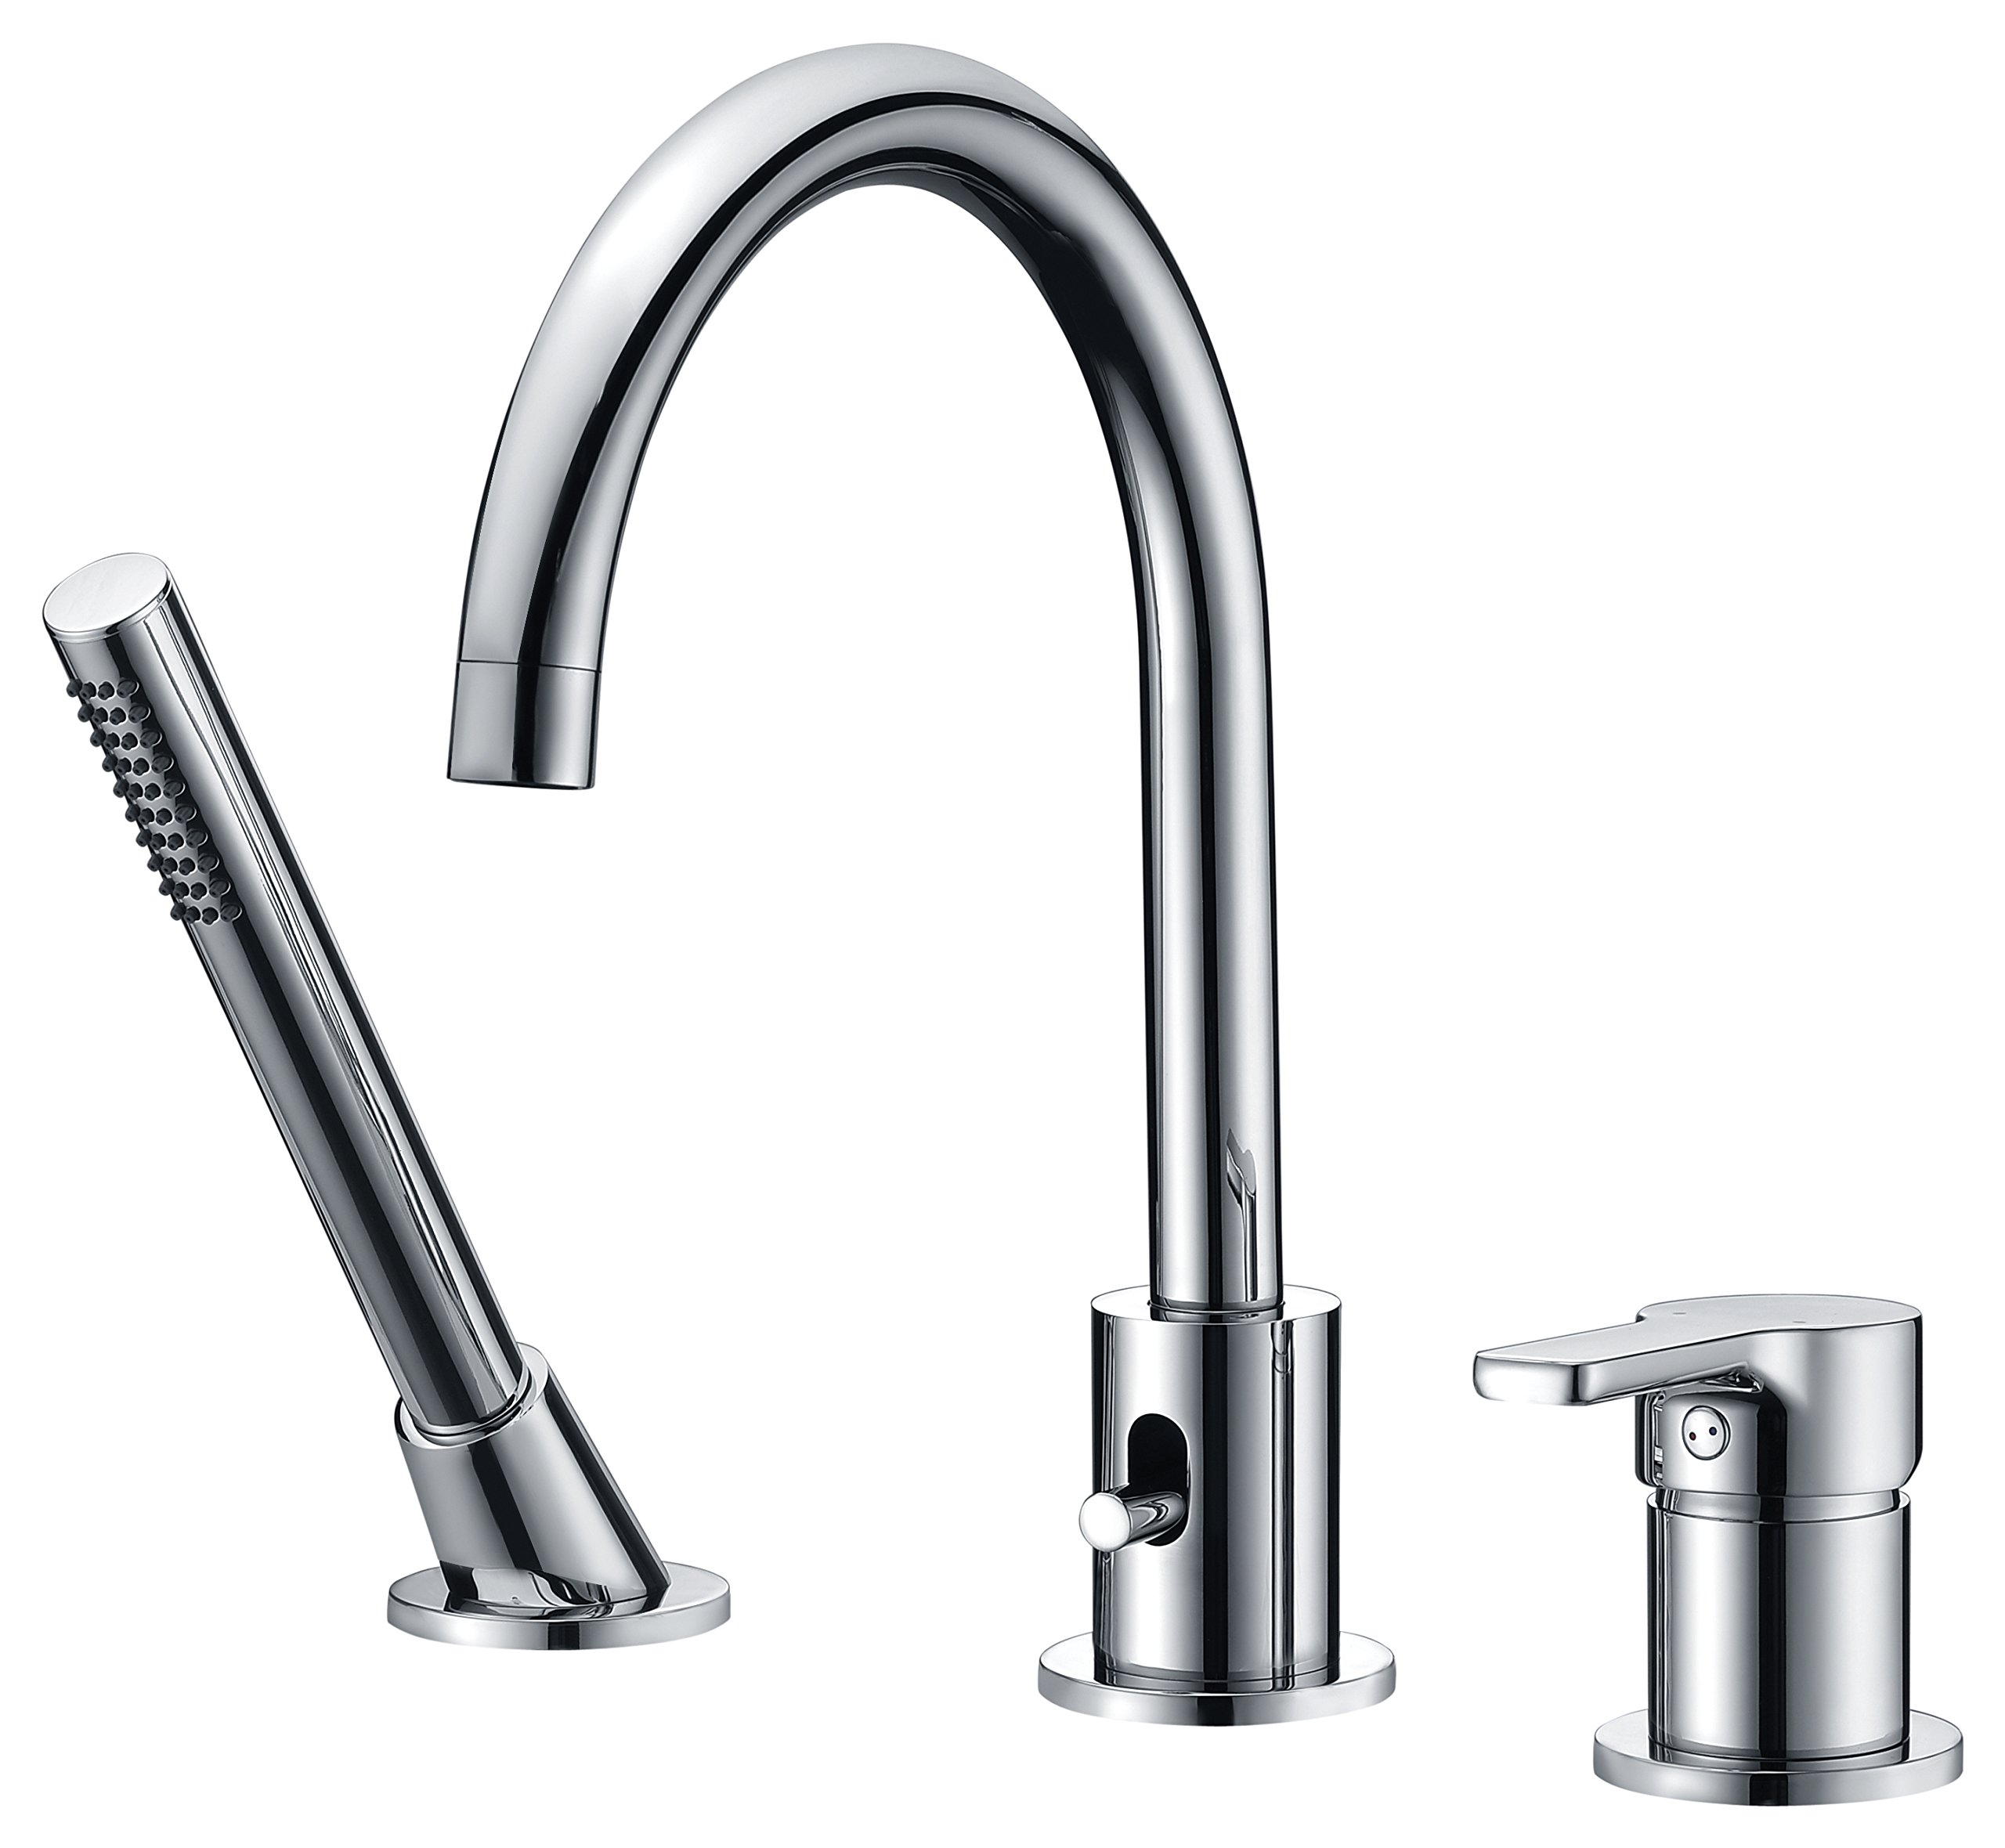 CREA Bathtub Faucet With Pull Out Sprayer 3 Hole Widespread Brass Bathroom Vanity Sink Tap Lavatory Faucet , Chrome by CREA (Image #1)